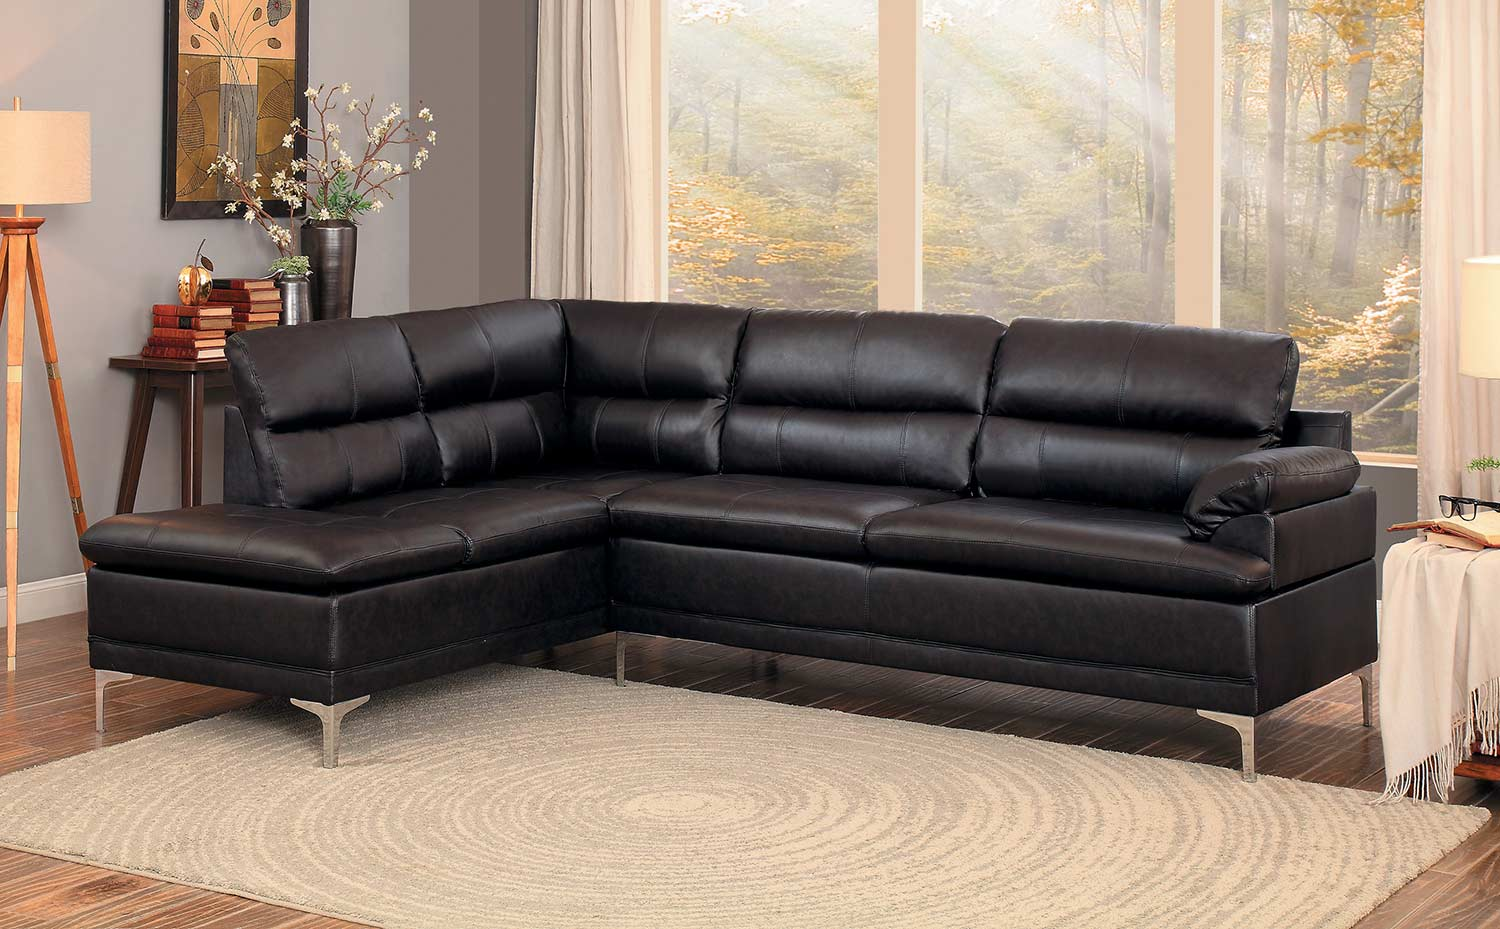 Homelegance Soyer Sectional Sofa - Dark Brown